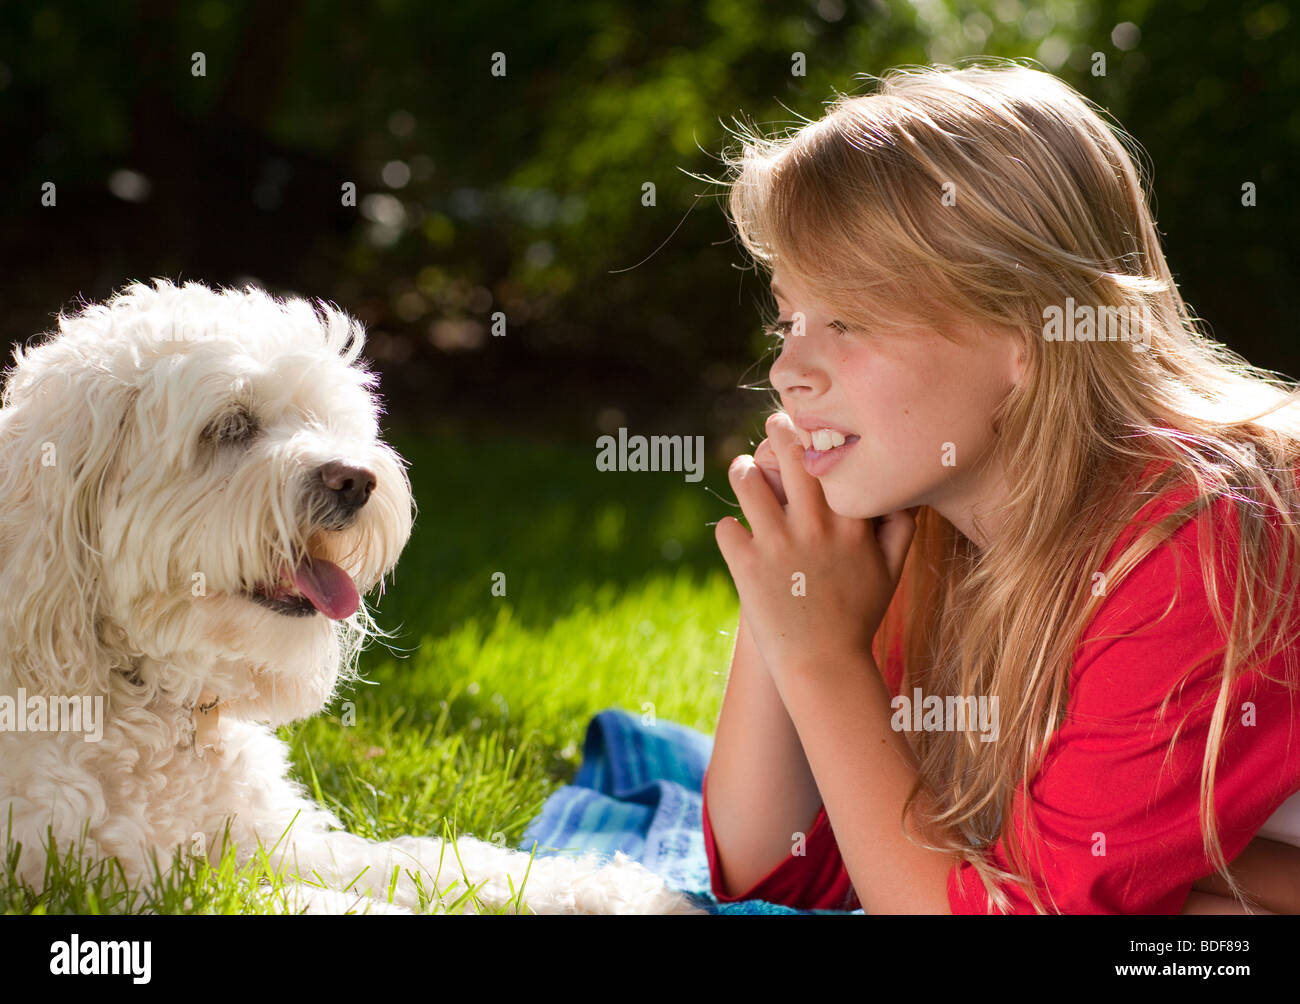 Child and her pet dog in the backyard - Stock Image